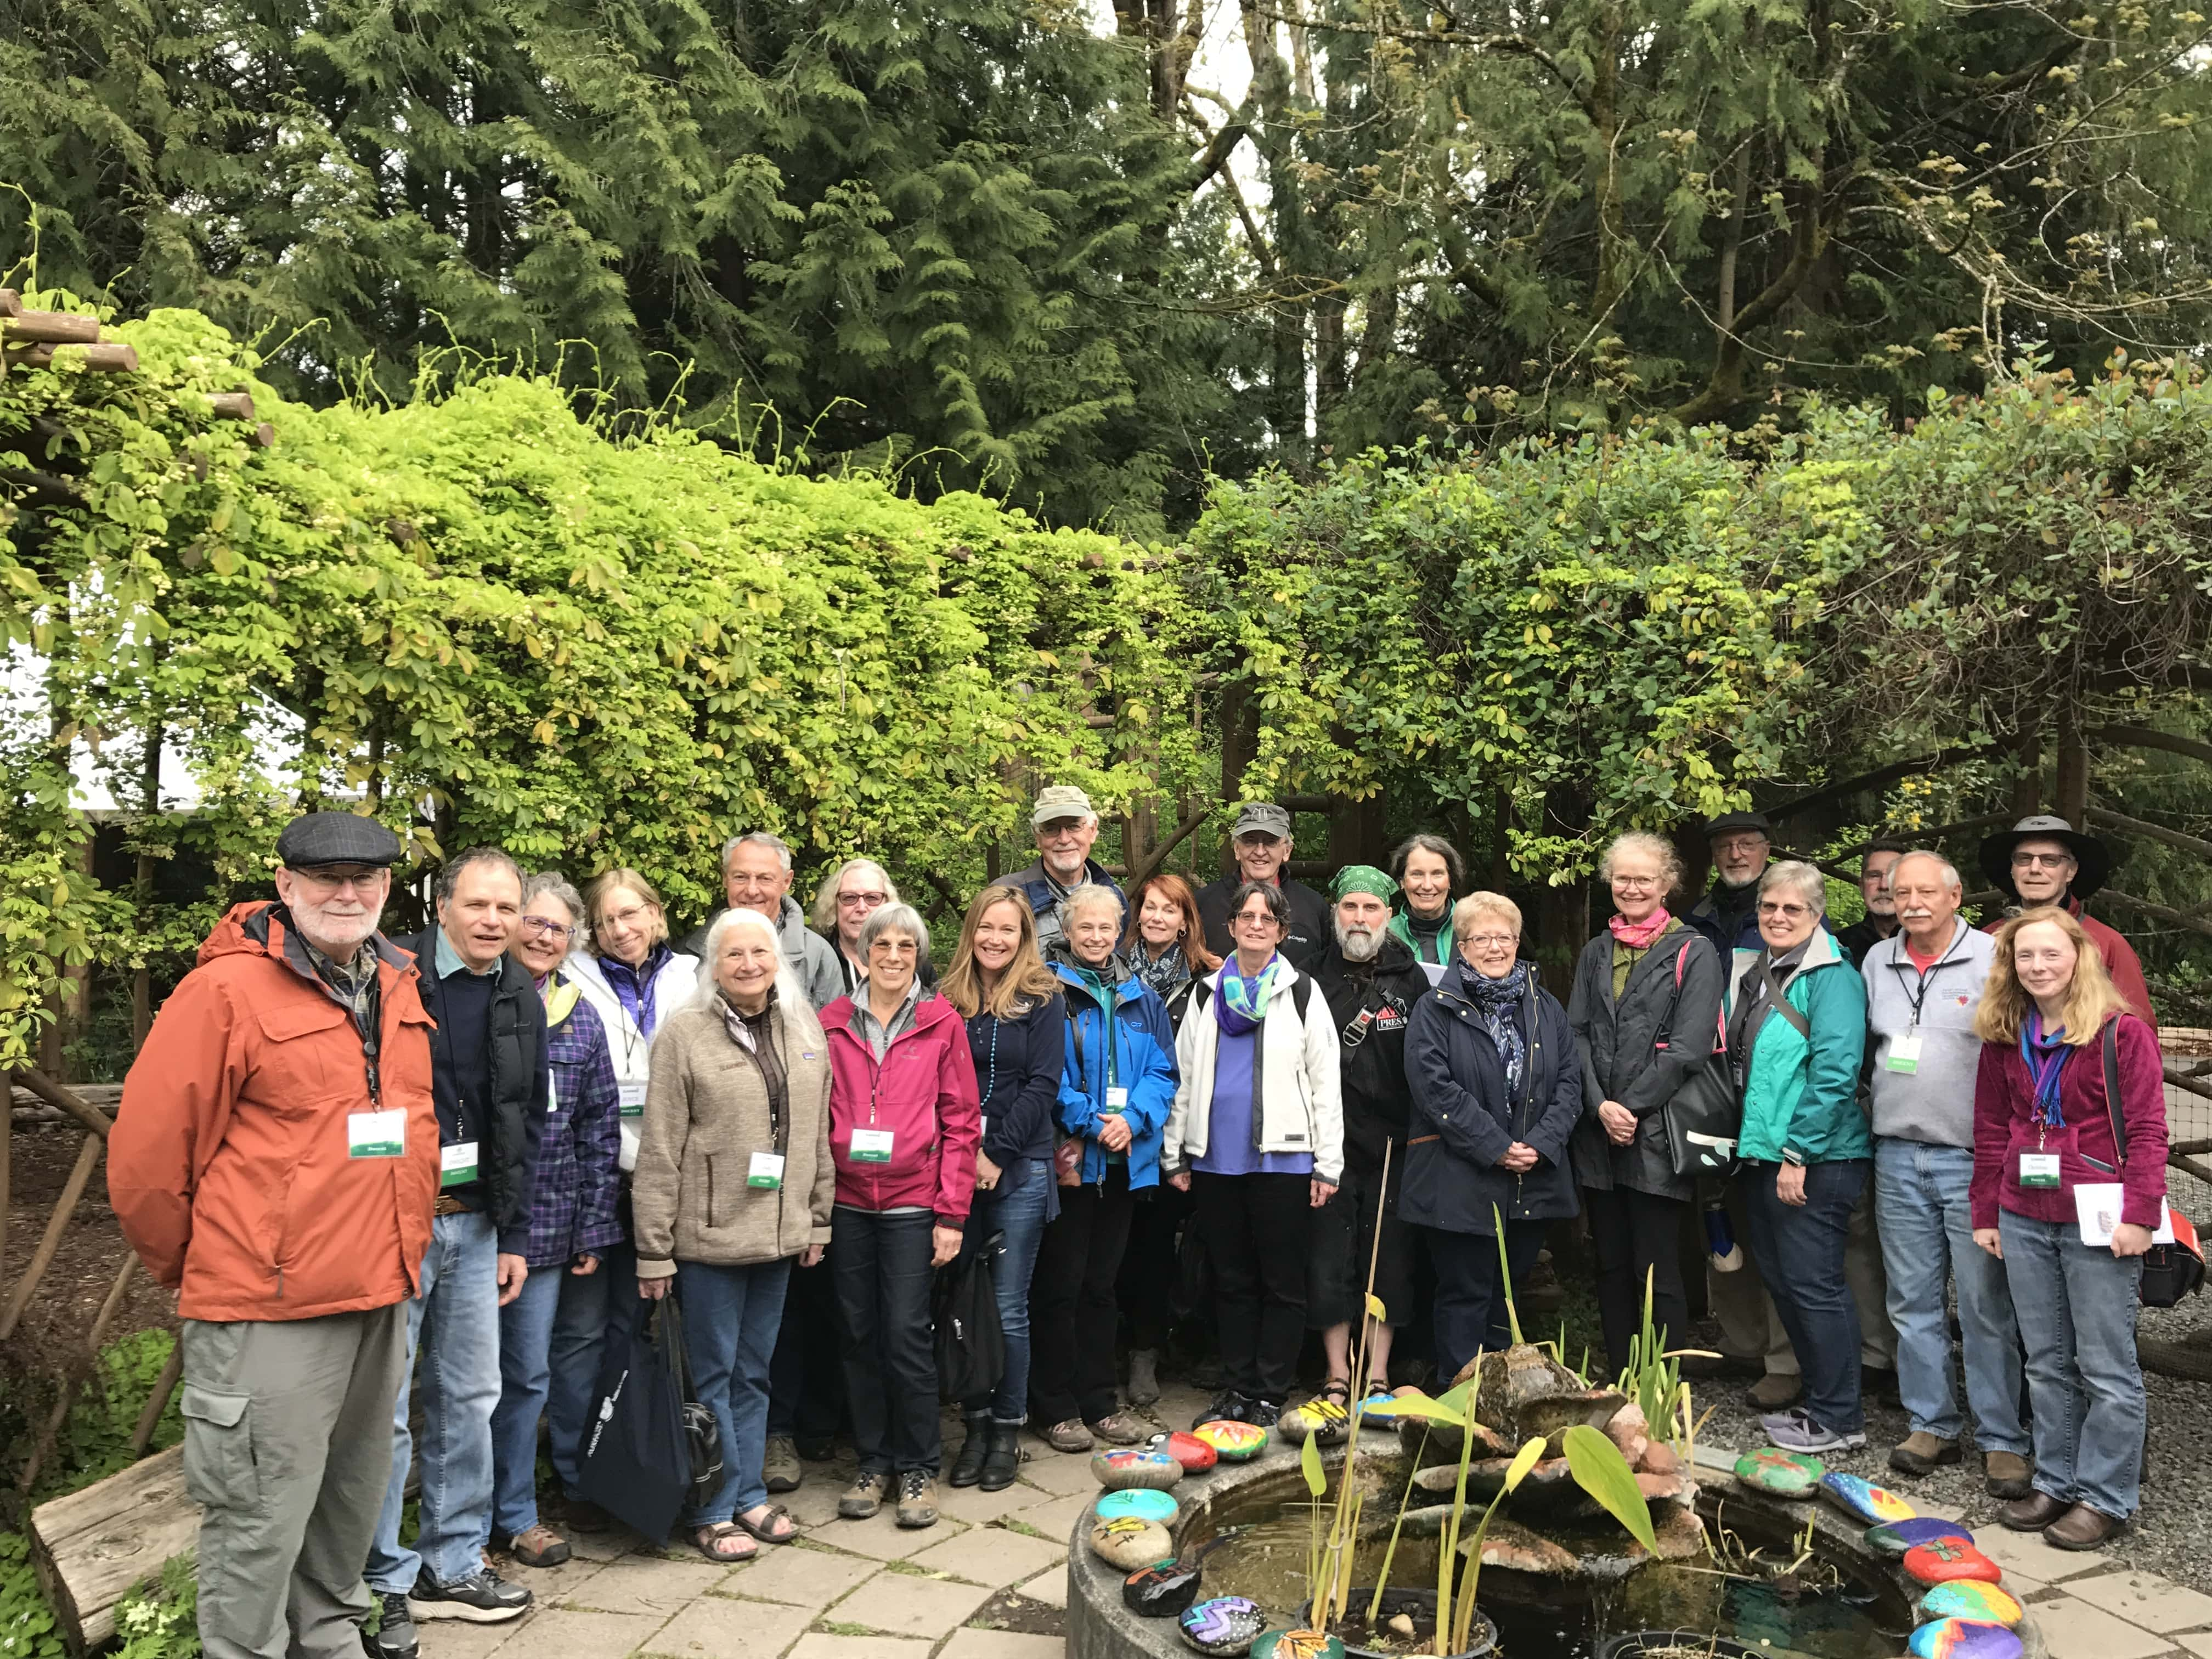 Docent furthering Environmental STEAM Education in IslandWood's Garden